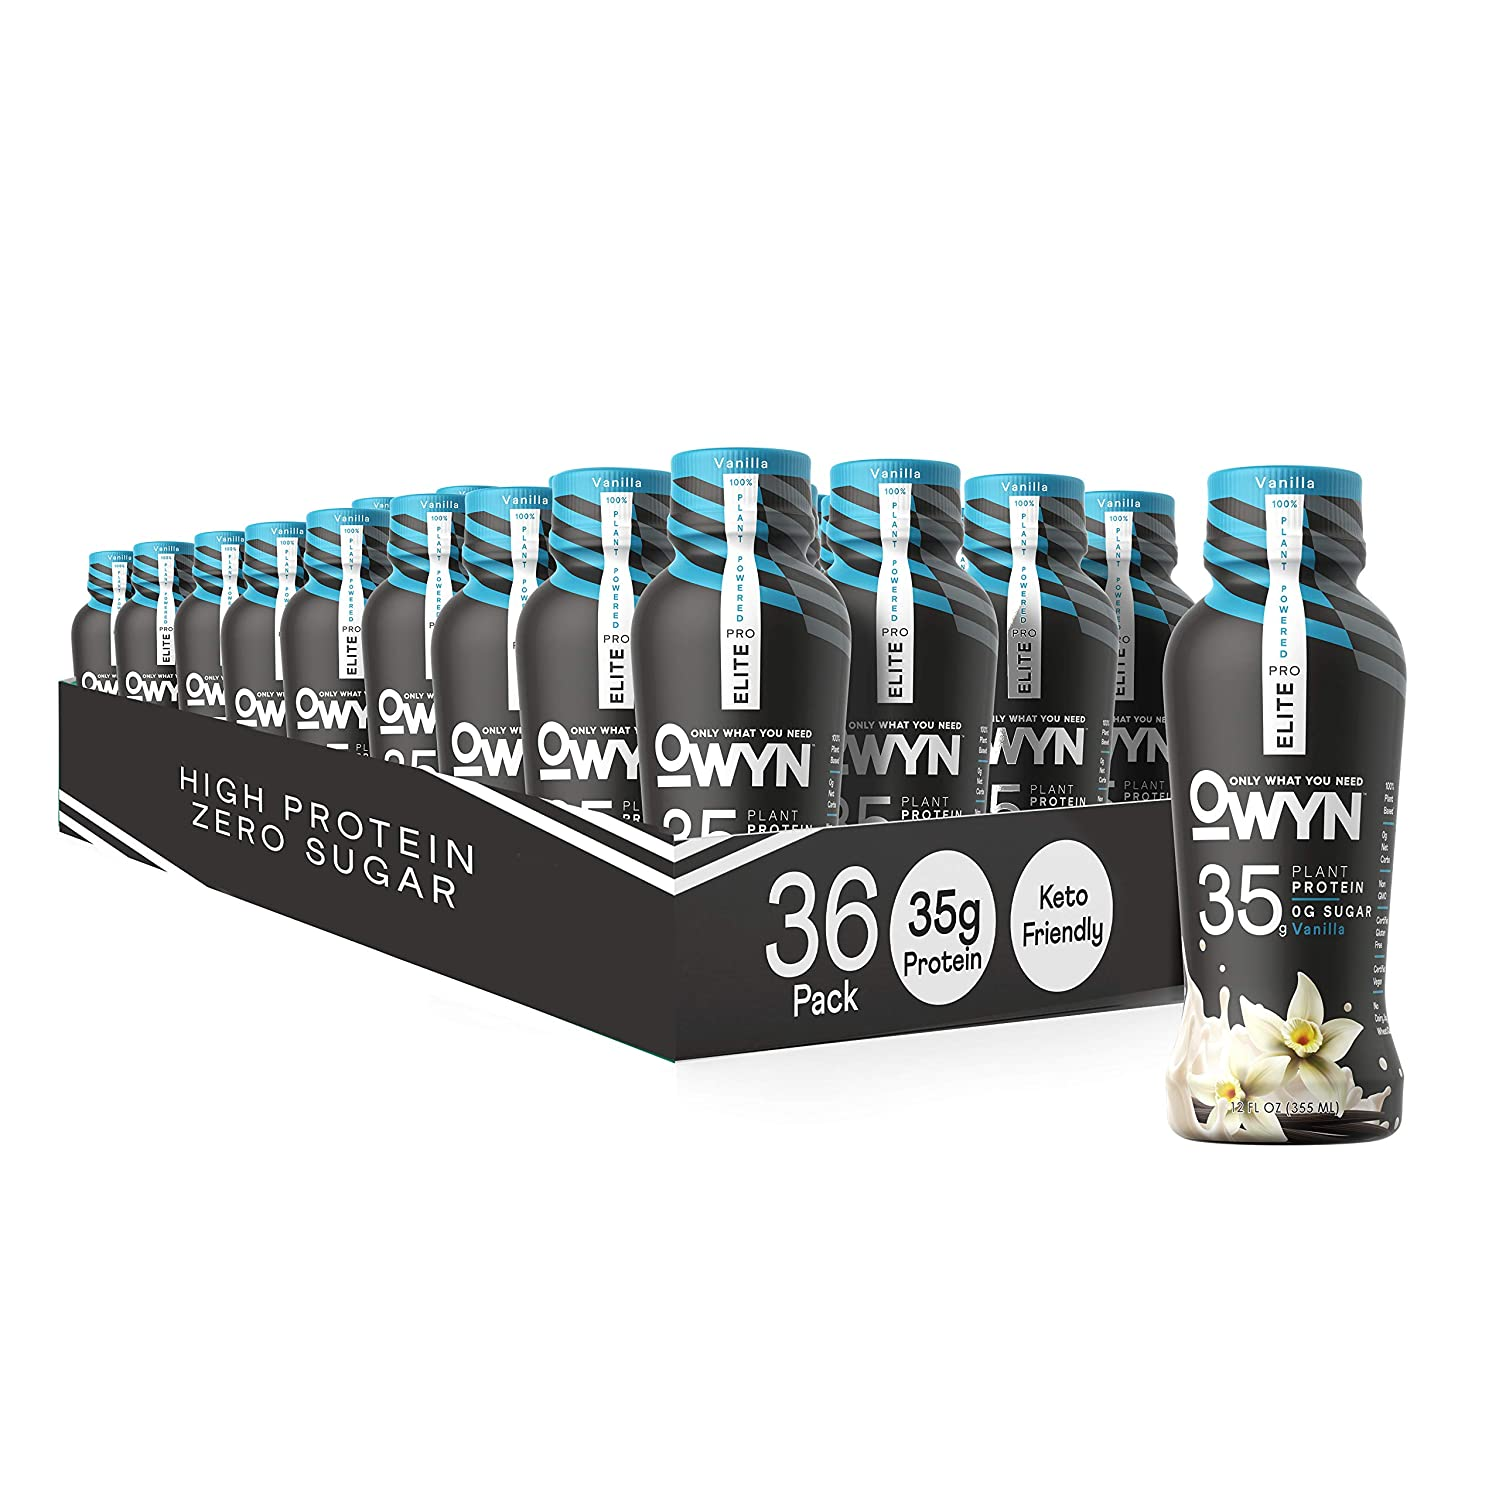 Owyn Pro Elite Opening large release sale Plant-Based High Protein Fl safety 12 Vanilla O Shake